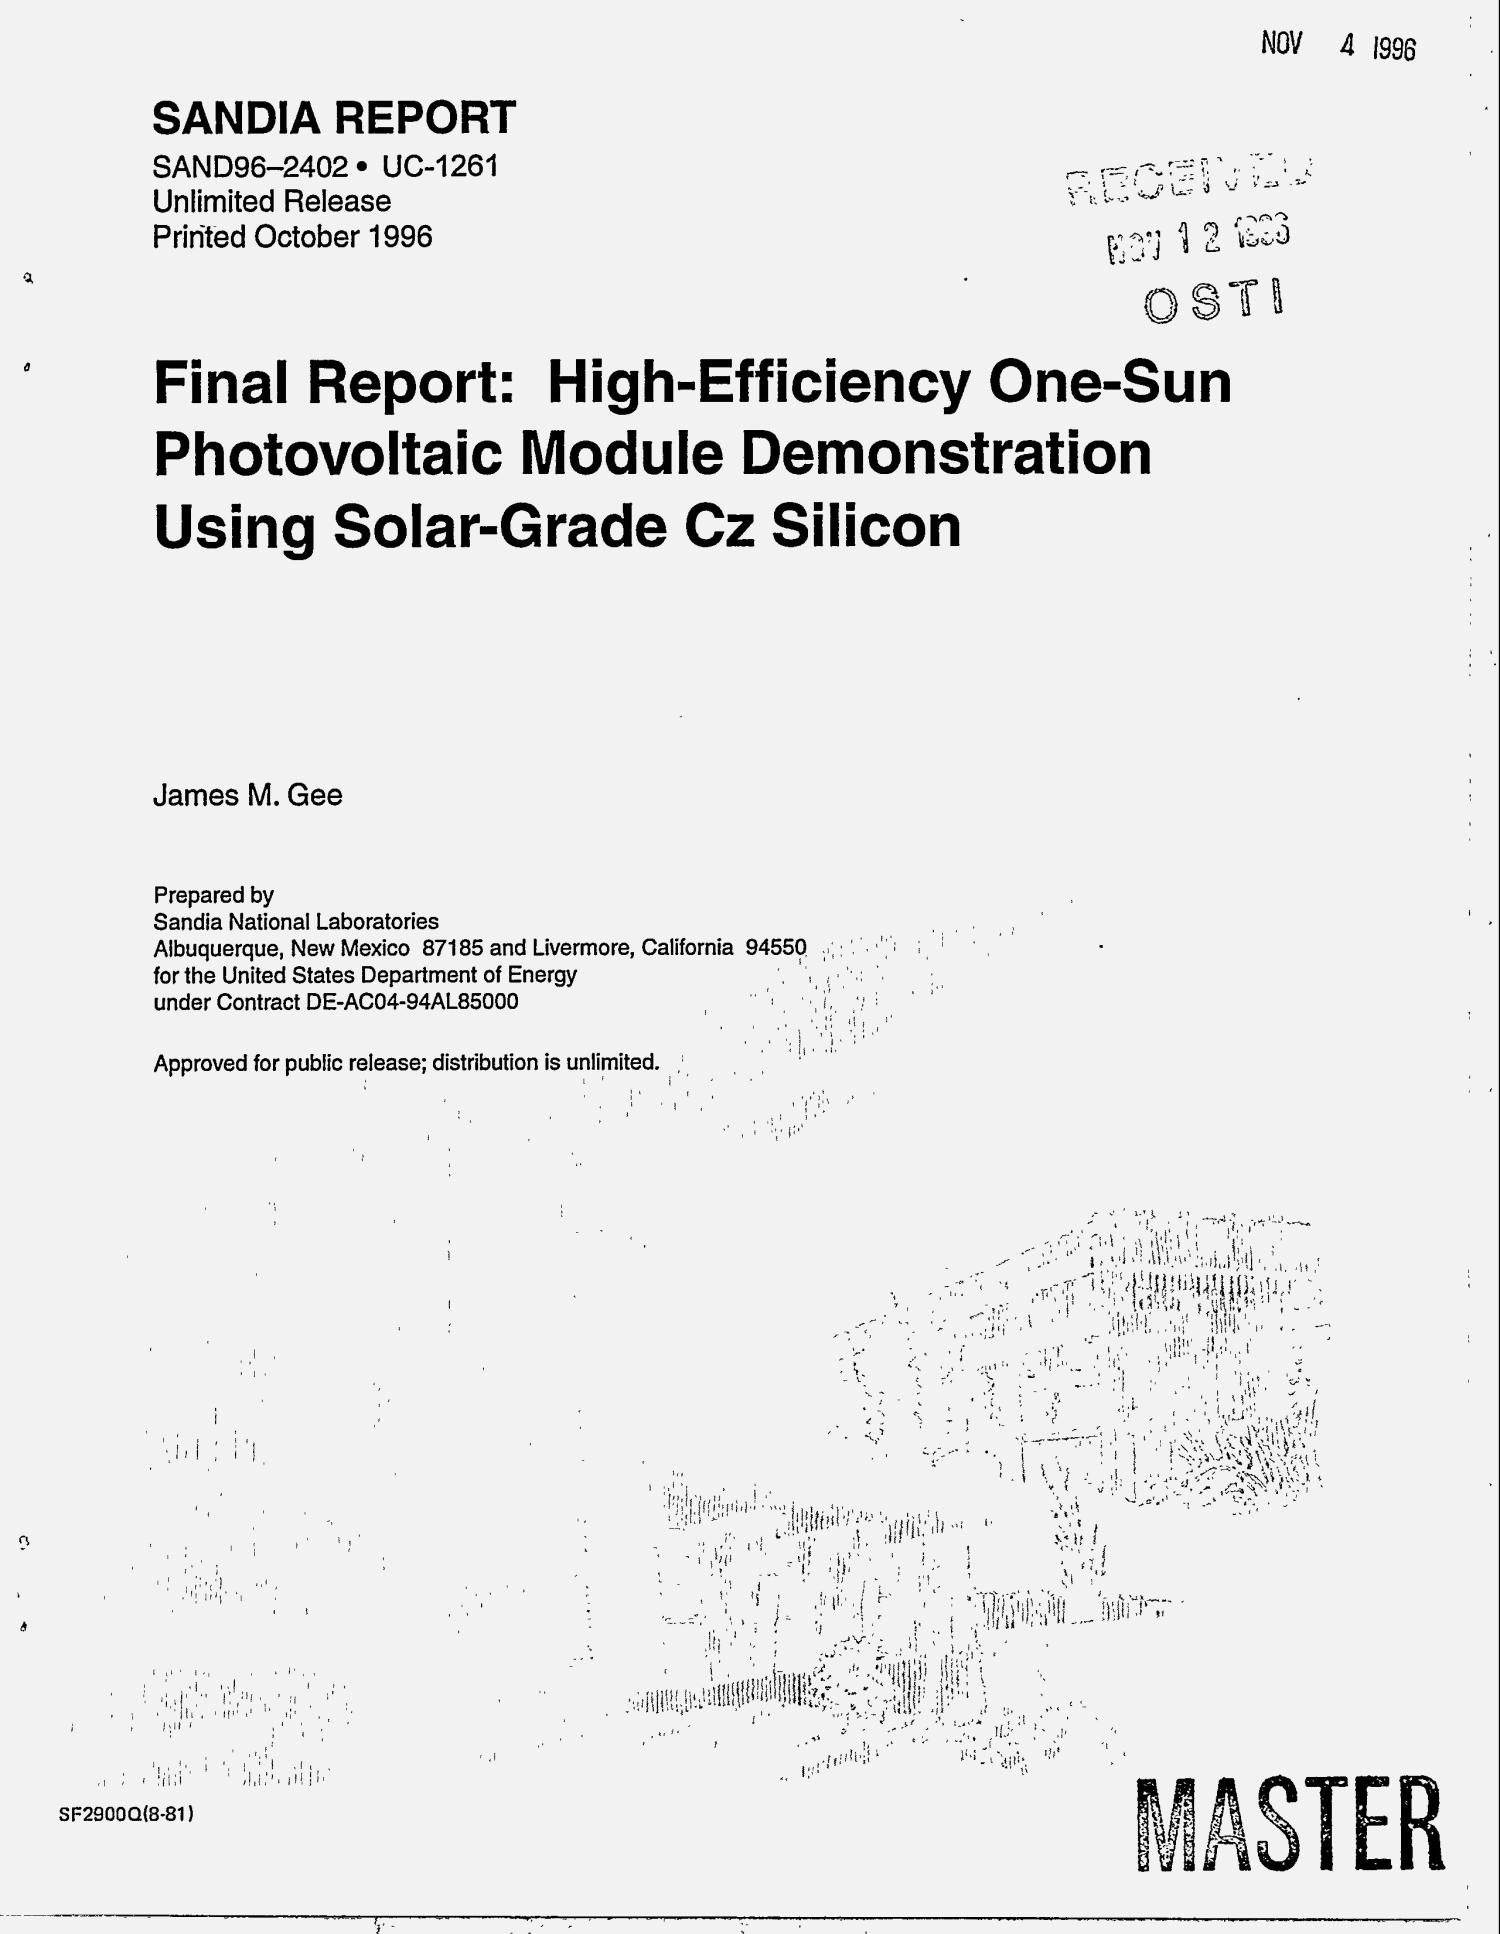 High-efficiency one-sun photovoltaic module demonstration using solar-grade CZ silicon. Final report                                                                                                      [Sequence #]: 1 of 72